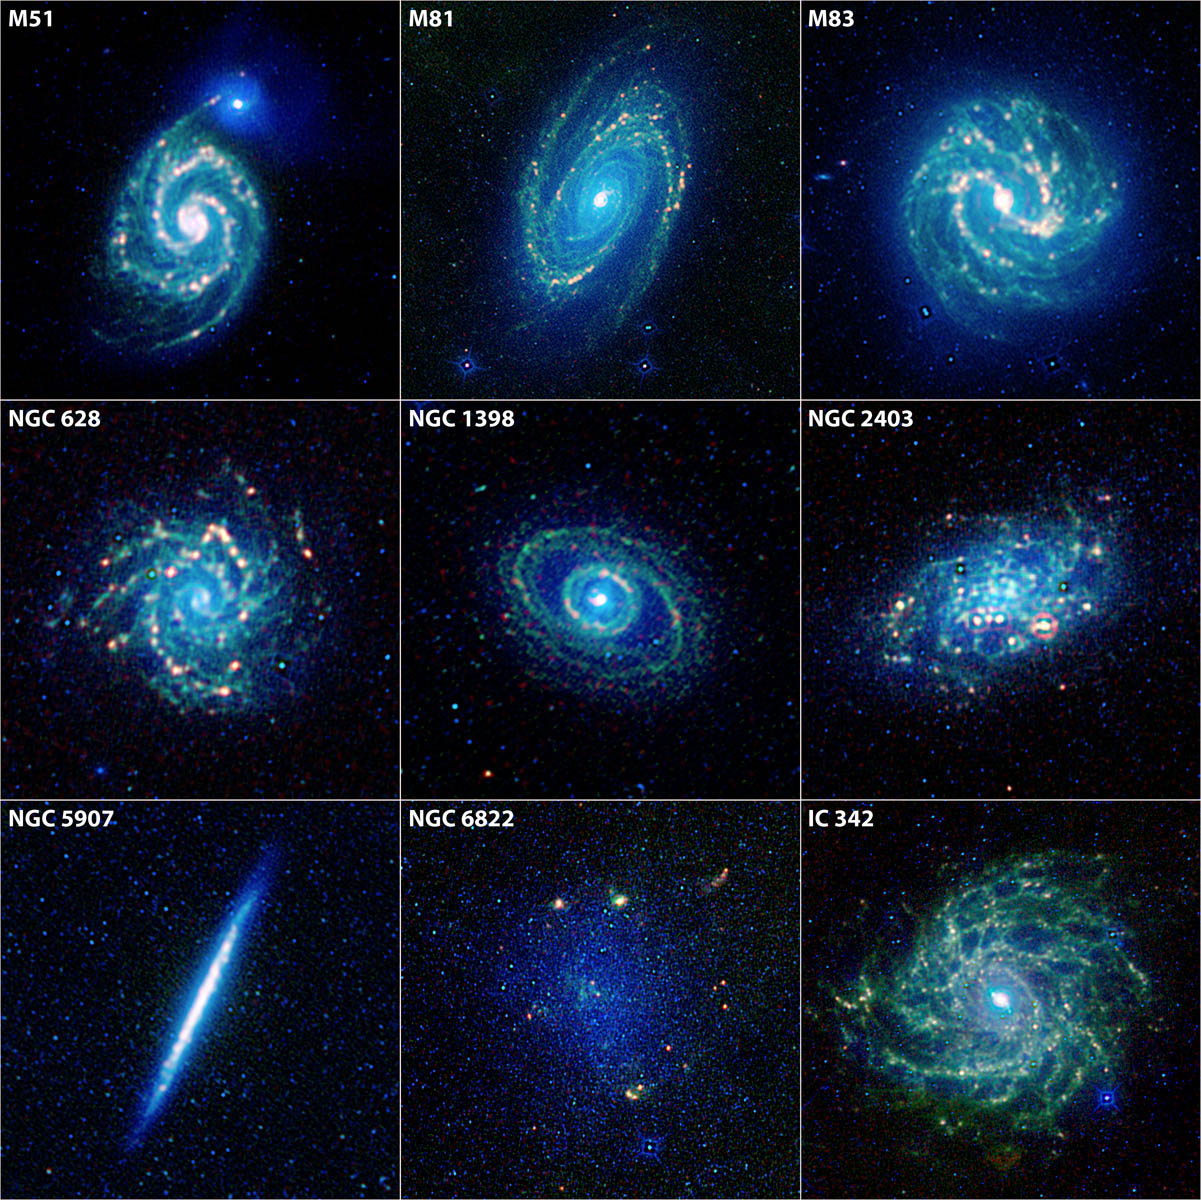 This image showcases galaxies of several types, from elegant grand design spirals to more patchy flocculent spirals. Some of the galaxies have roundish centers, while others have elongated central bars.